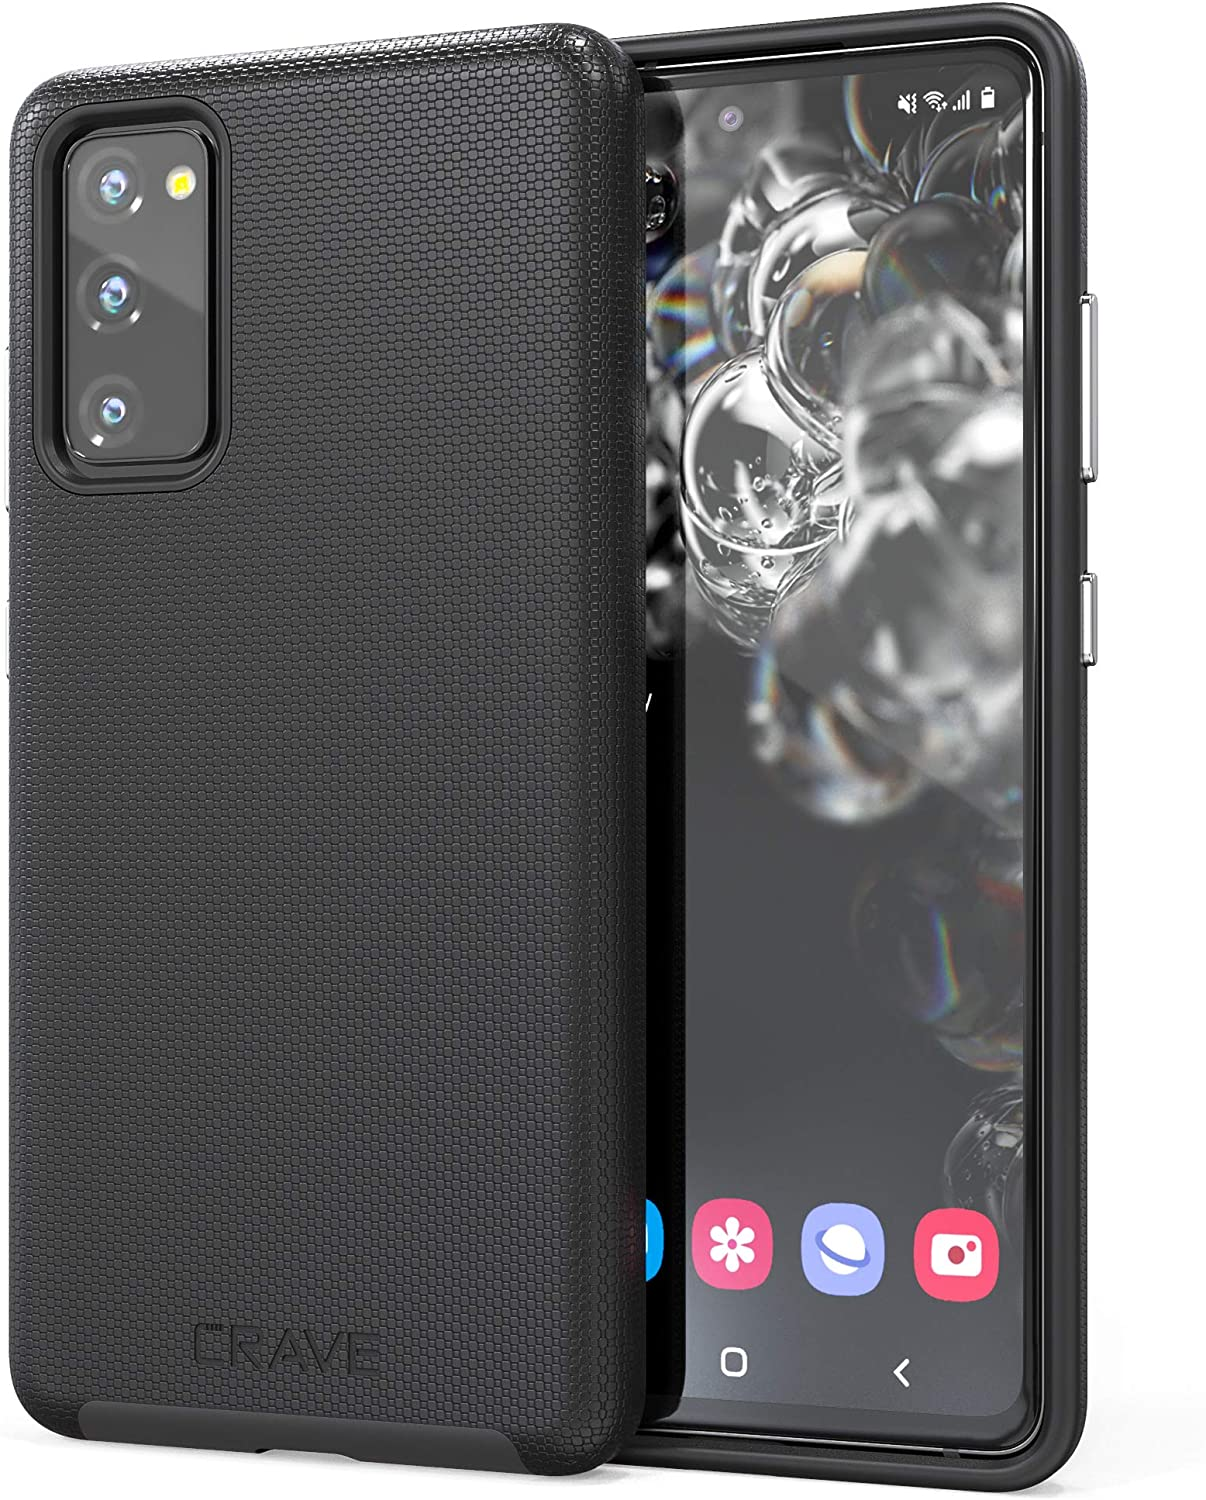 Crave Dual Guard for Samsung Galaxy S20 FE Case, Shockproof Protection Dual Layer Case for Samsung Galaxy S20 FE, S20 FE 5G - Black